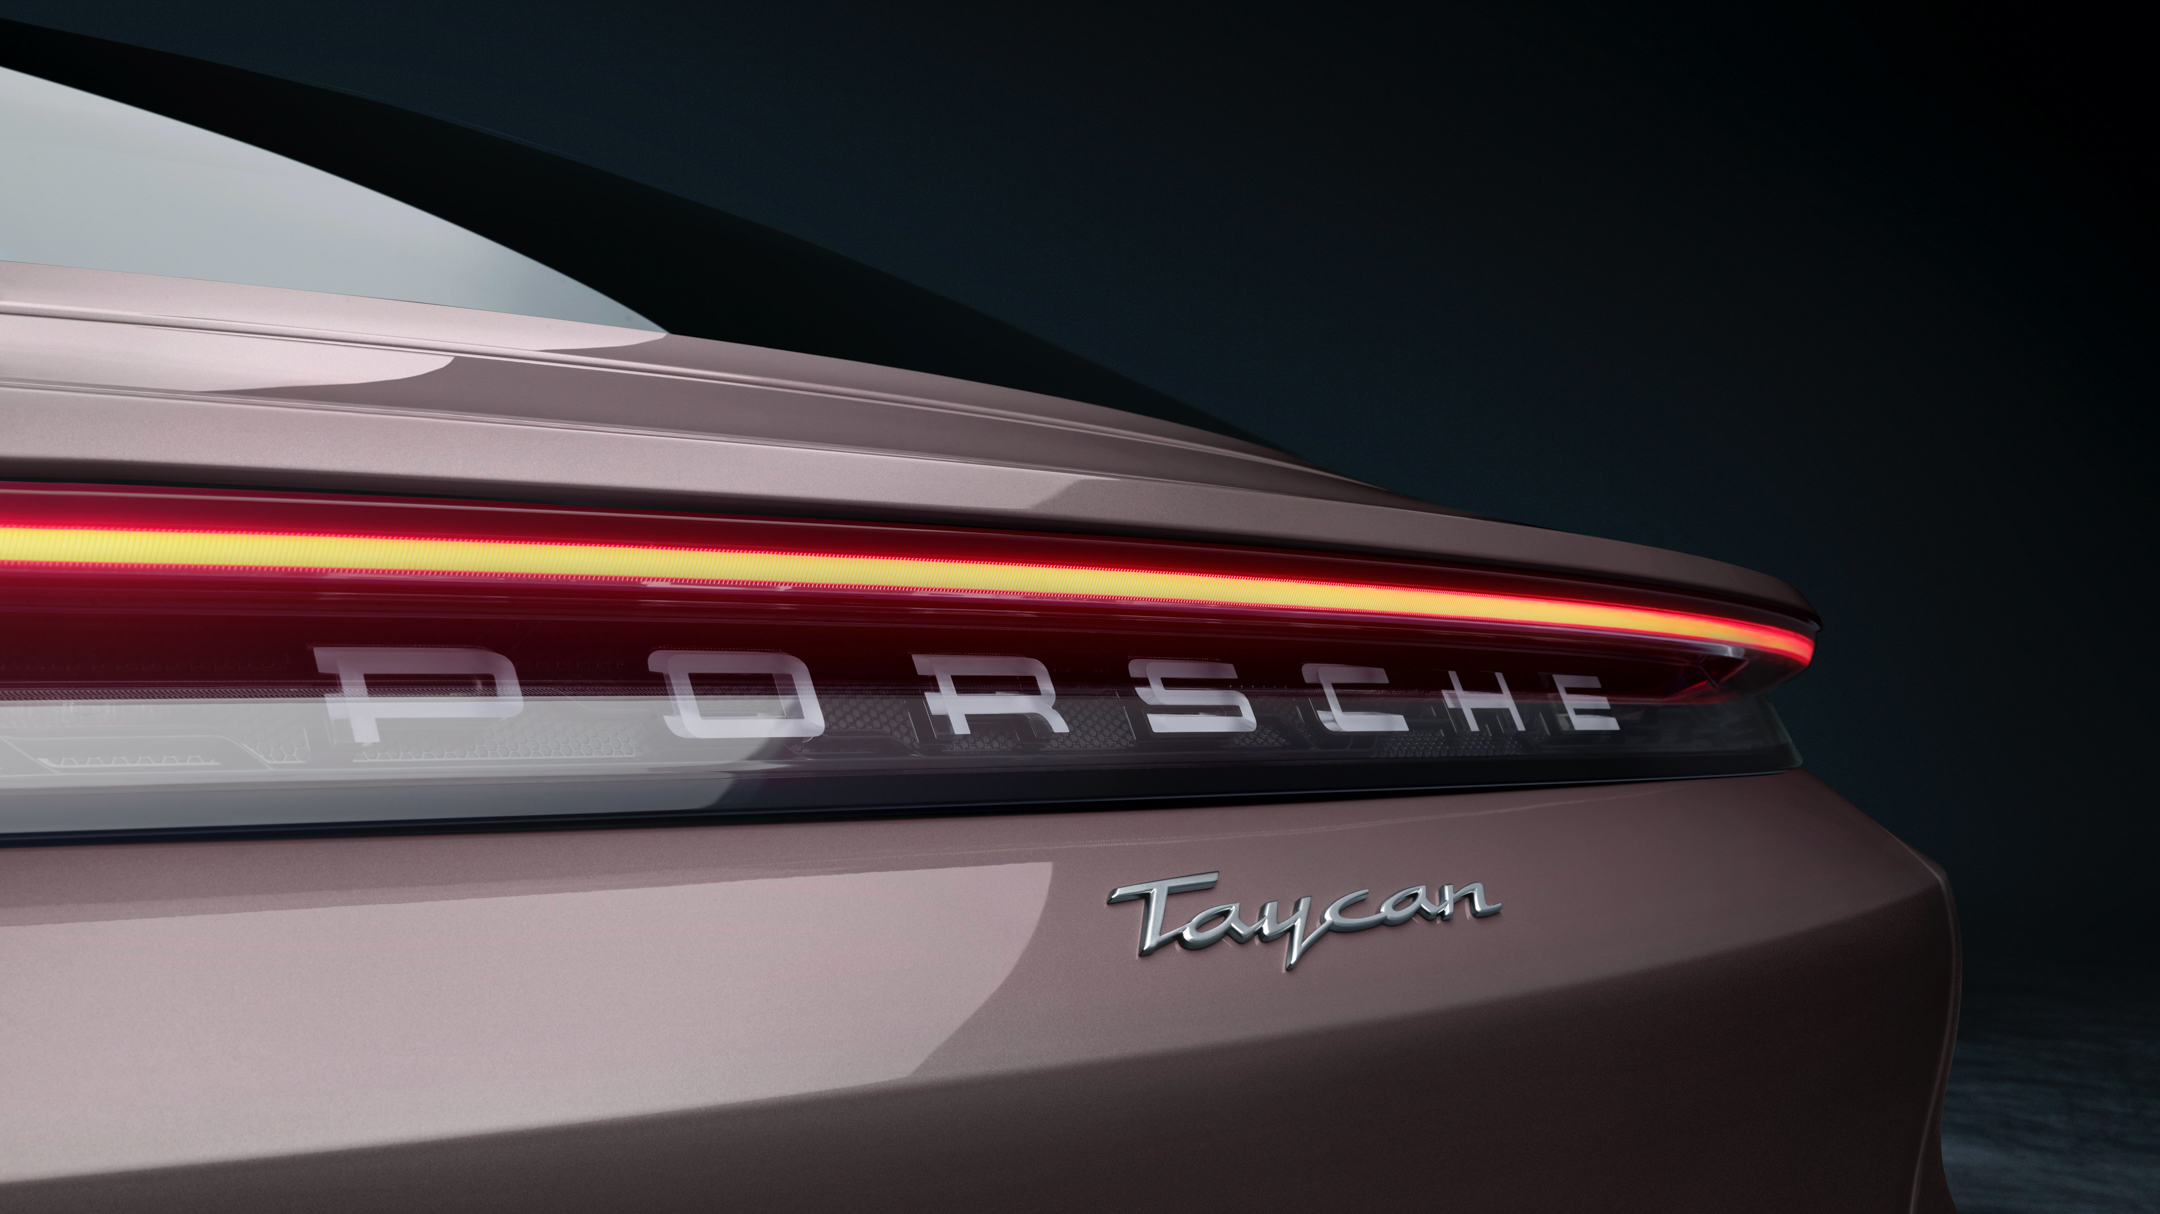 The new 2021 RWD Porsche Taycan: range, price and release date